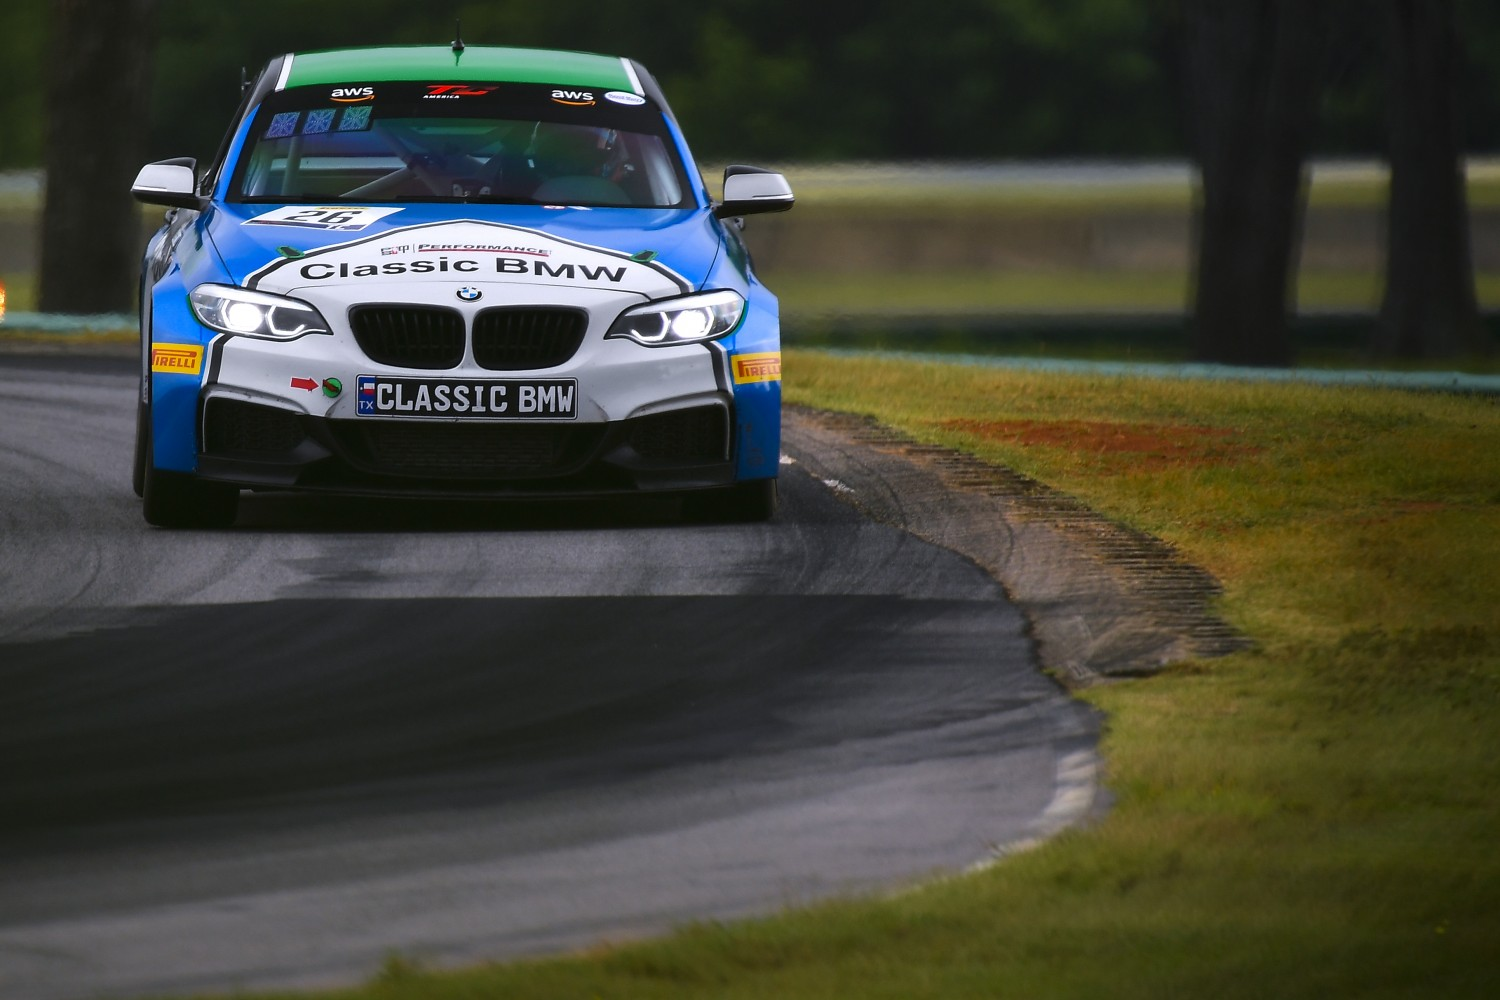 #26 TC, Classic BMW, Toby Grahovec, BMW M240iR Cup, ClassicBMW.com, 2020 SRO Motorsports Group - VIRginia International Raceway, Alton VA  | SRO Motorsports Group